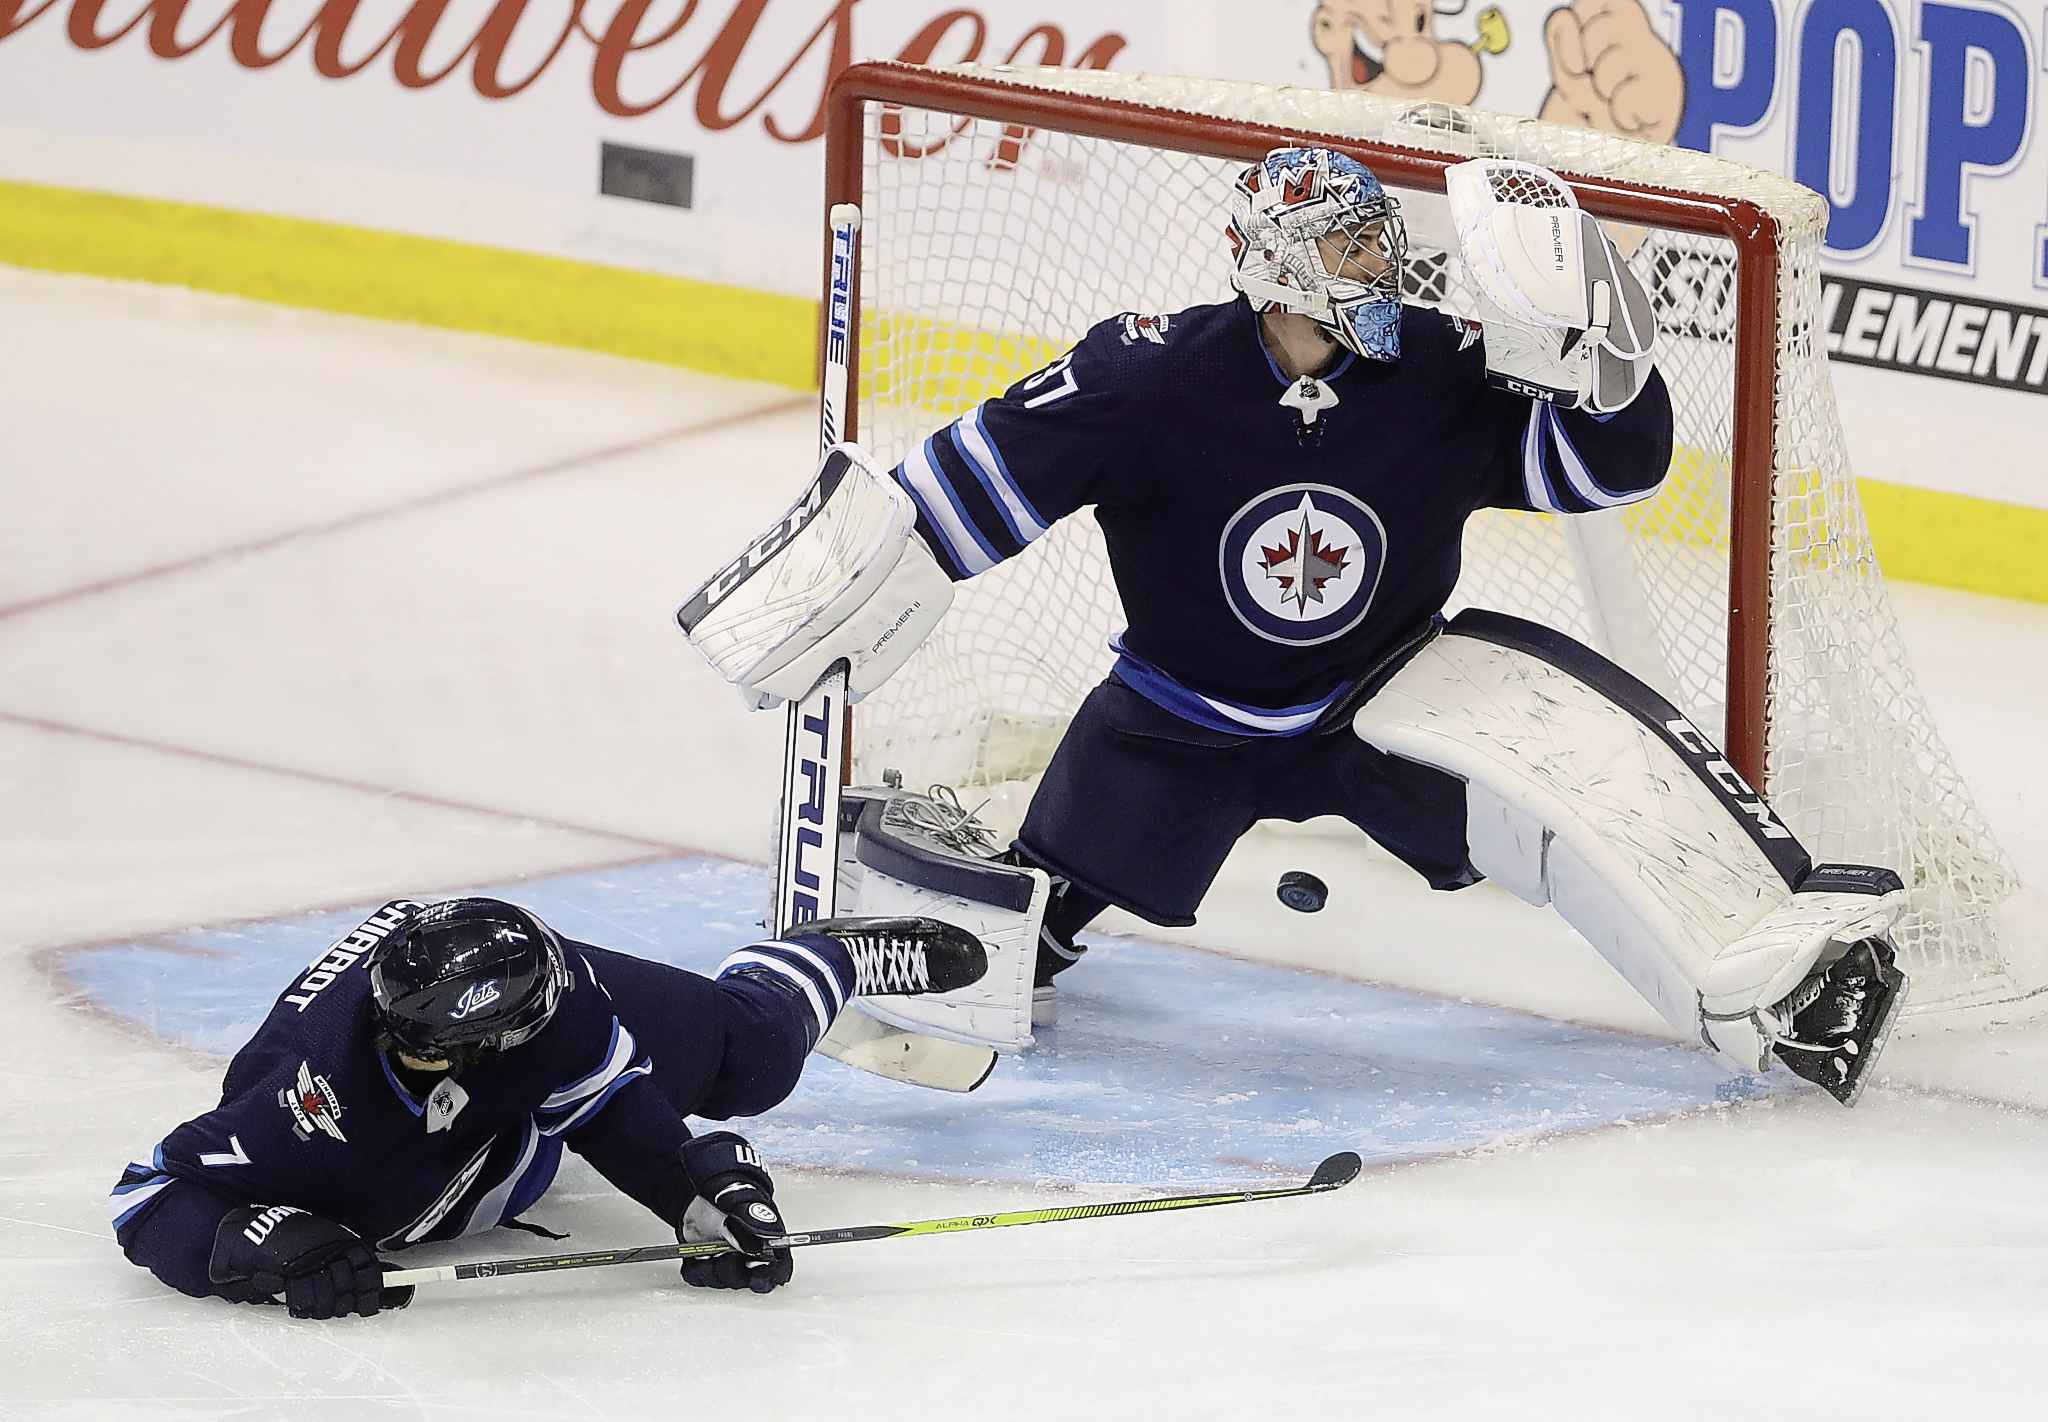 TREVOR HAGAN / THE CANADIAN PRESS</p><p>A shot by Anaheim Ducks' Brian Gibbons (23), not shown, gets past Winnipeg Jets goaltender Connor Hellebuyck (37) with Ben Chiarot (7) in front of the net during first period NHL hockey action in Winnipeg, Sunday, January 13, 2019.</p>